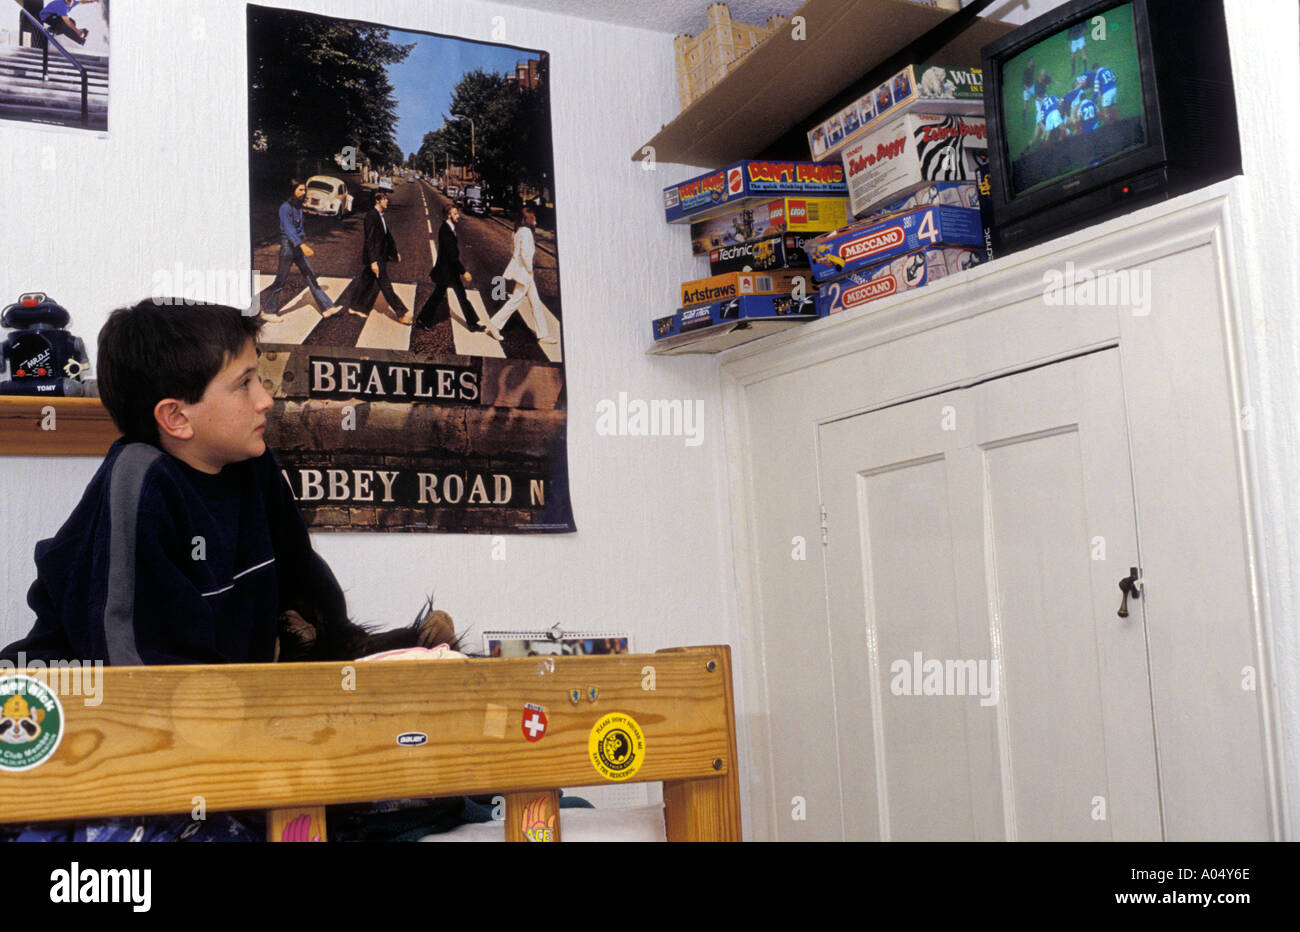 Young Boy Sitting On Top Of Bunk Bed Watching Football On Television